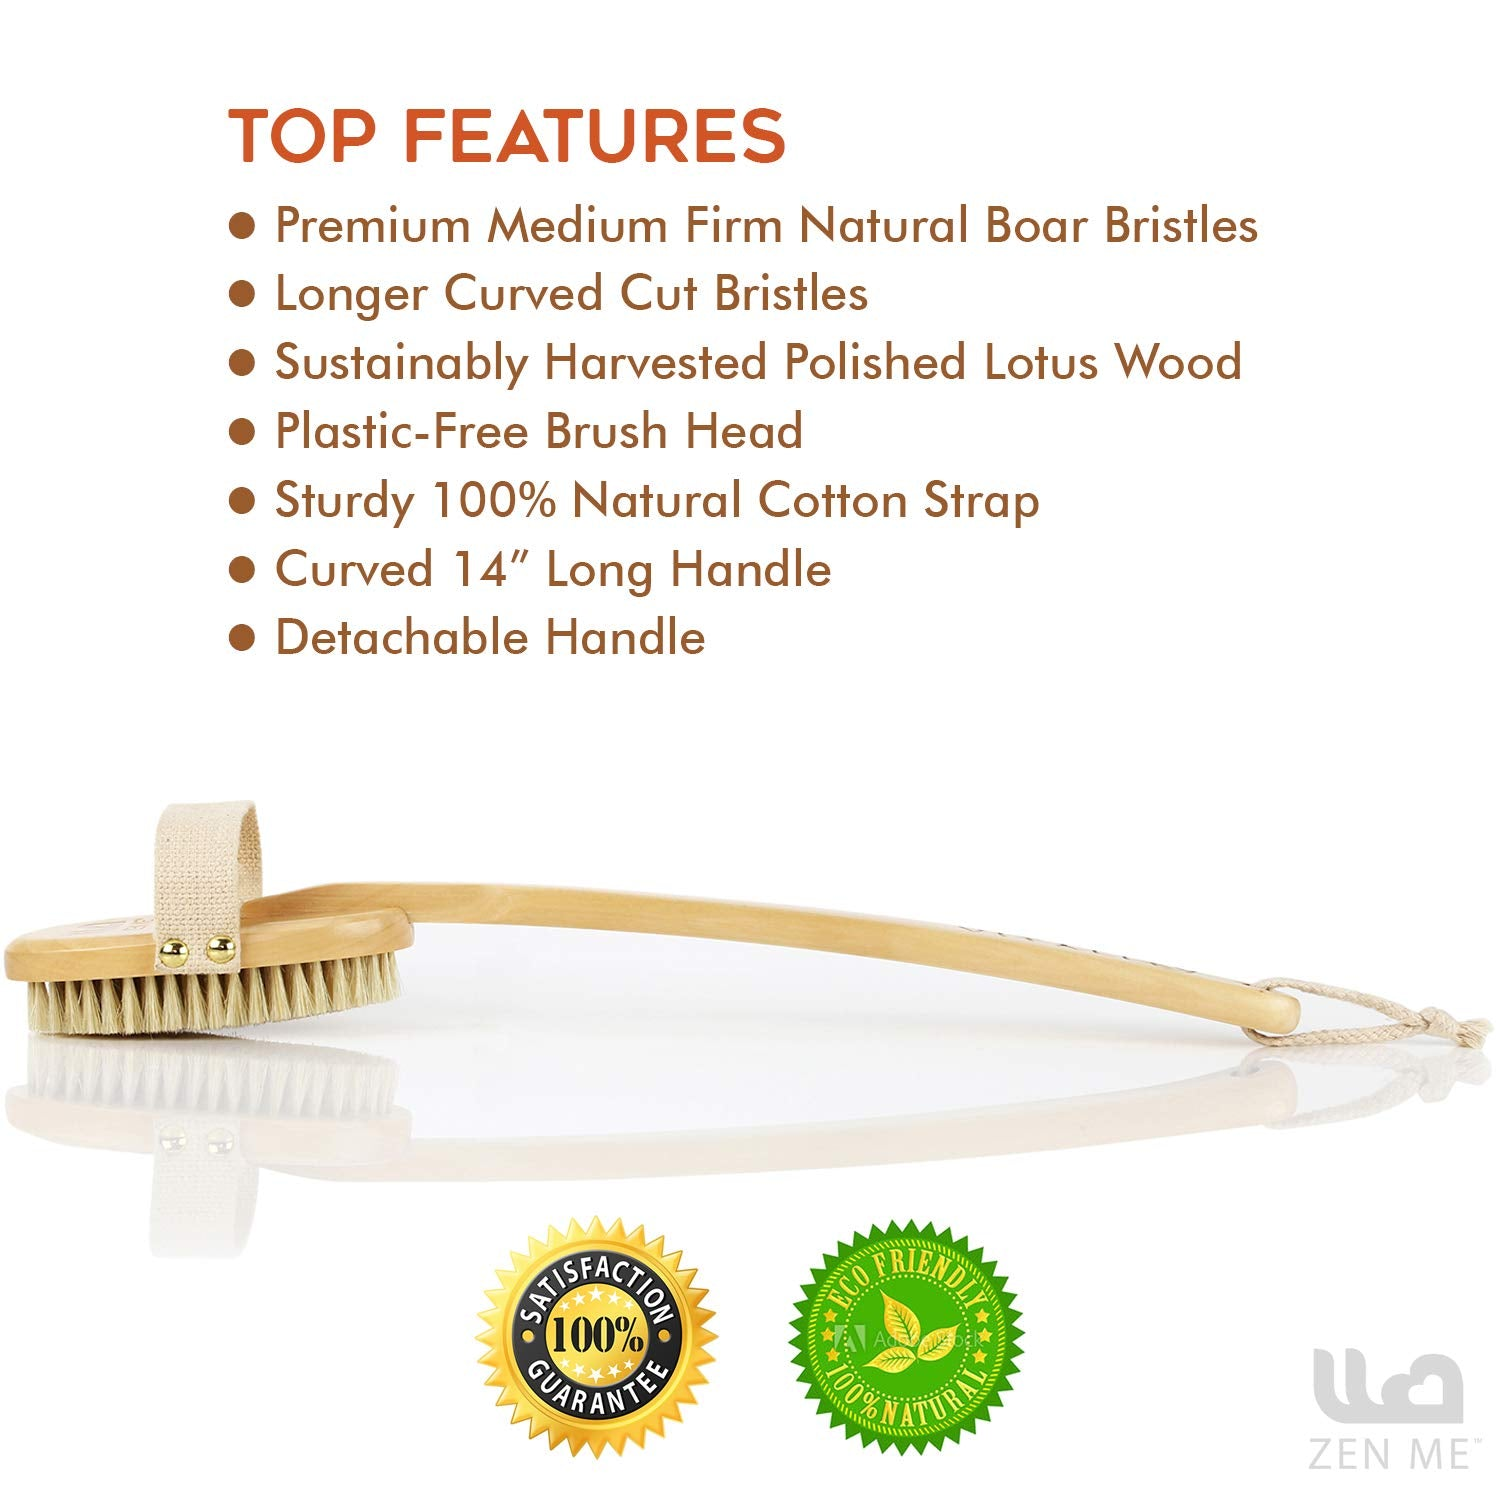 Dry Brush for Cellulite and Lymphatic Massage for Glowing Tighter Skin – Plastic-Free Natural Bristle Body Brush with Long Handle to Easily Exfoliate Dry Skin